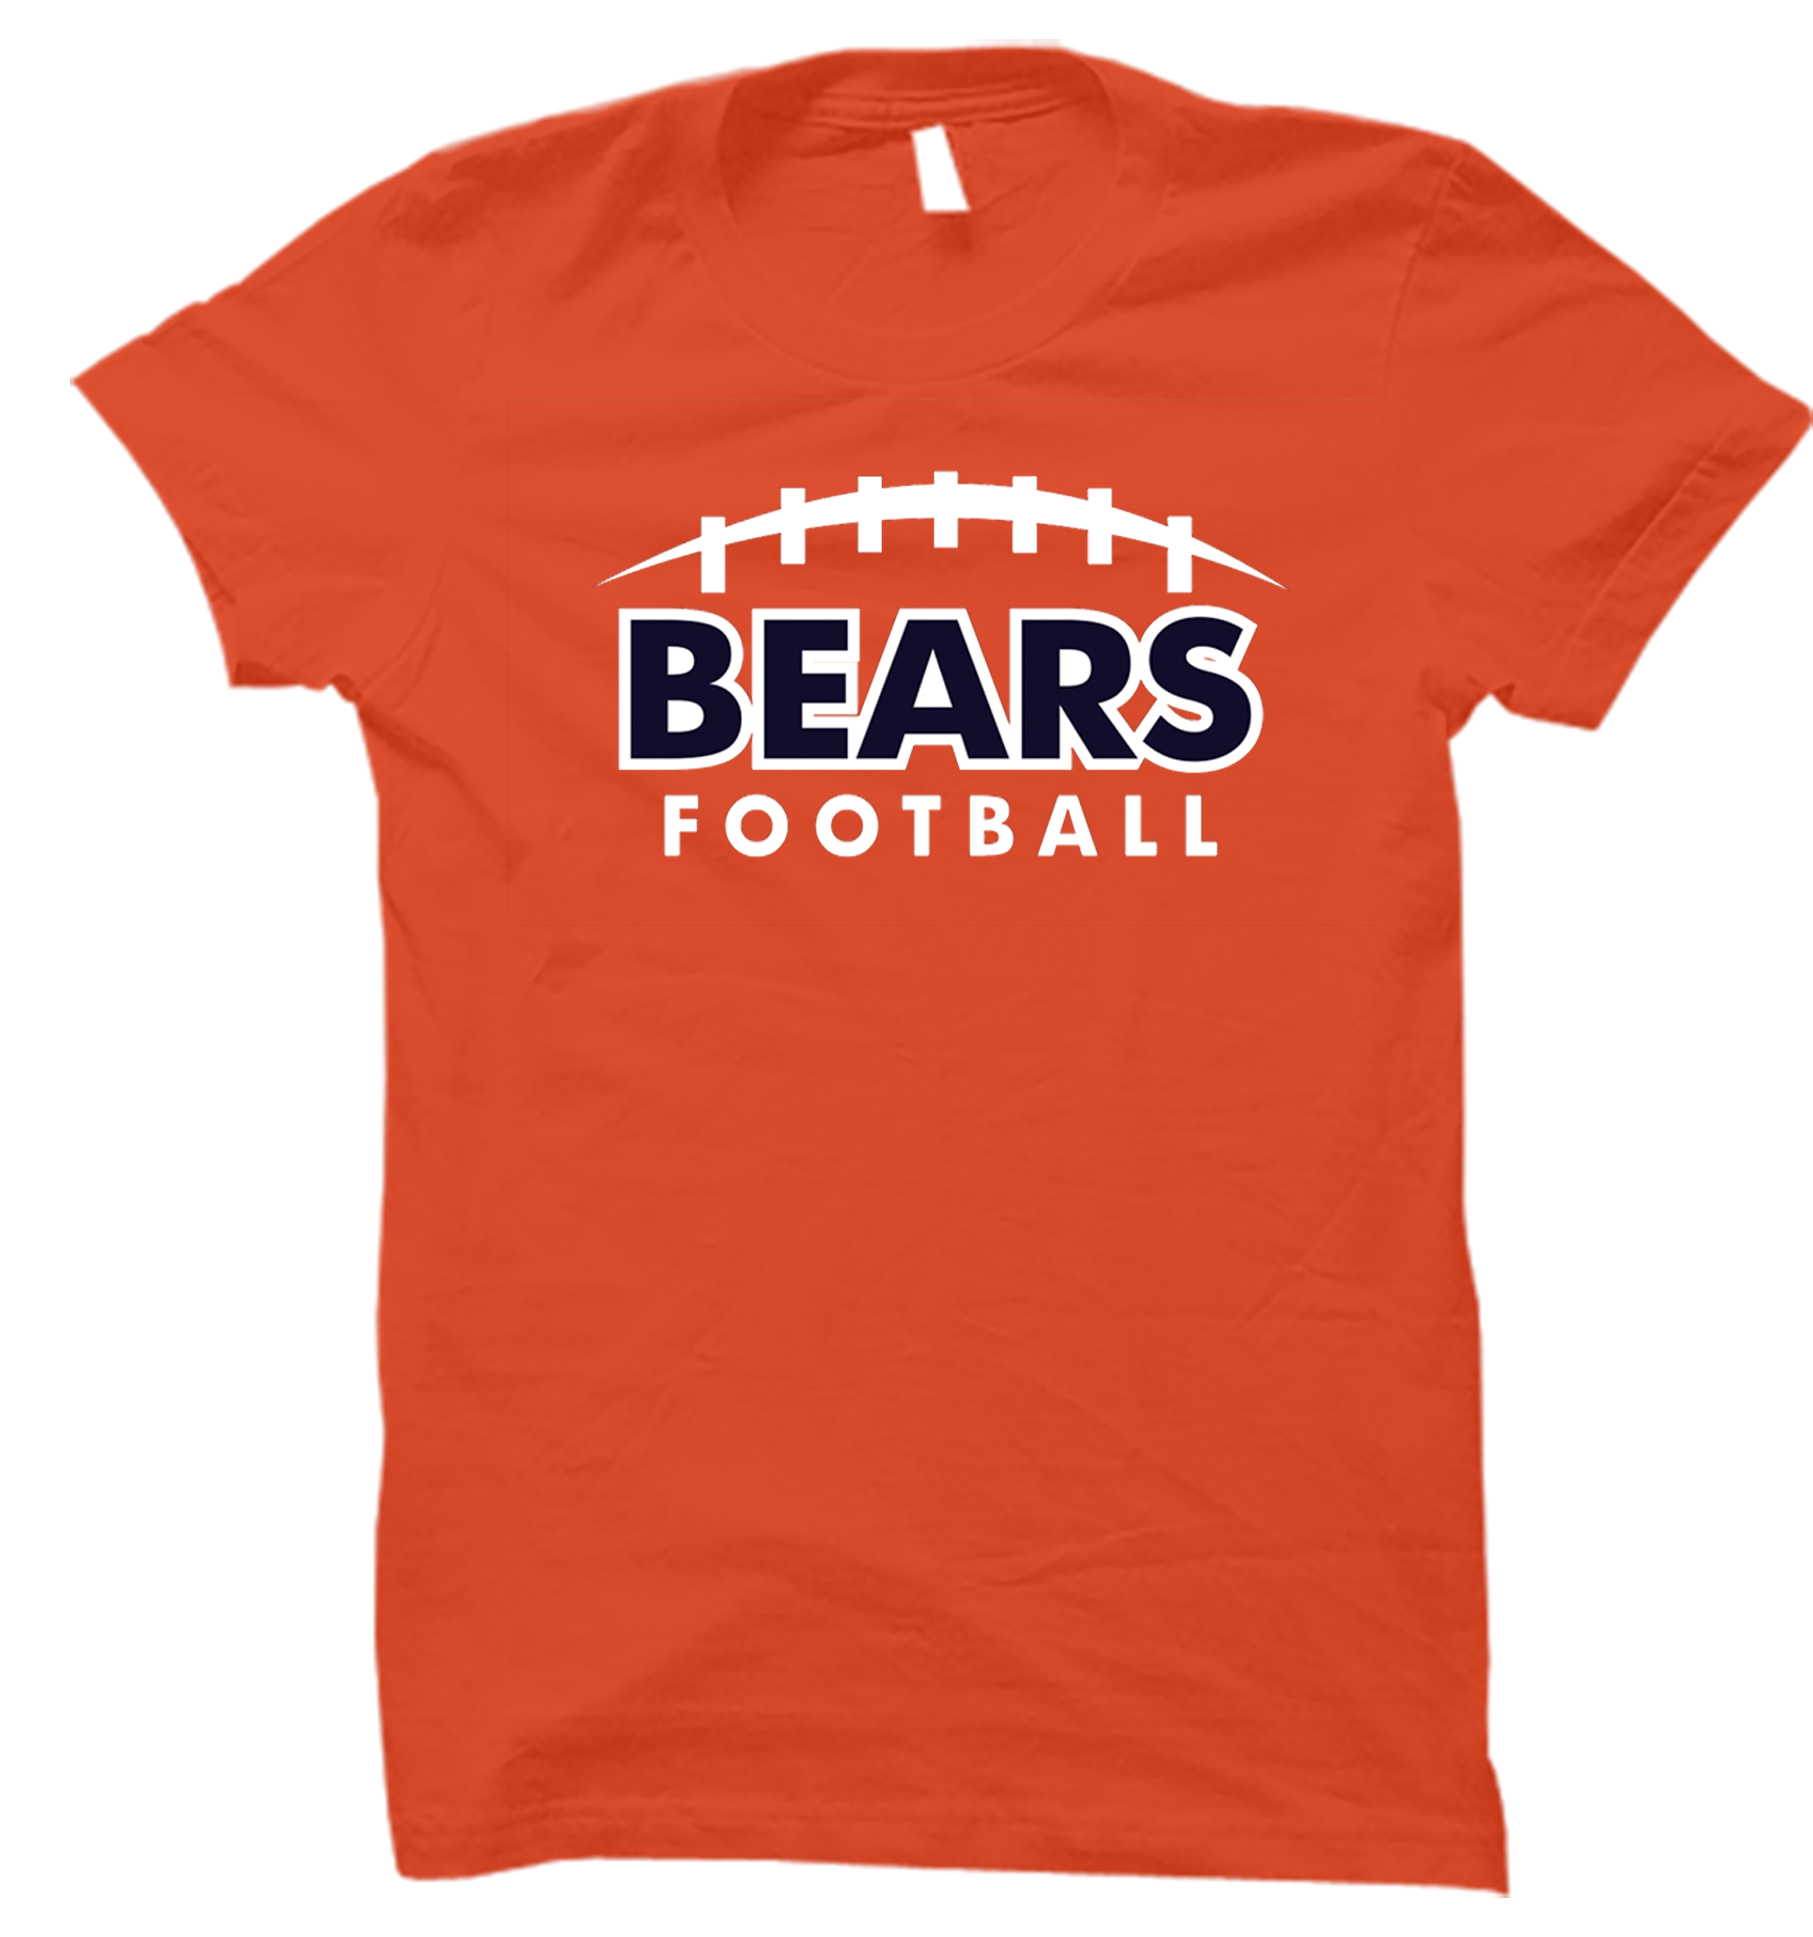 Bears SS 2017 2 - Orange